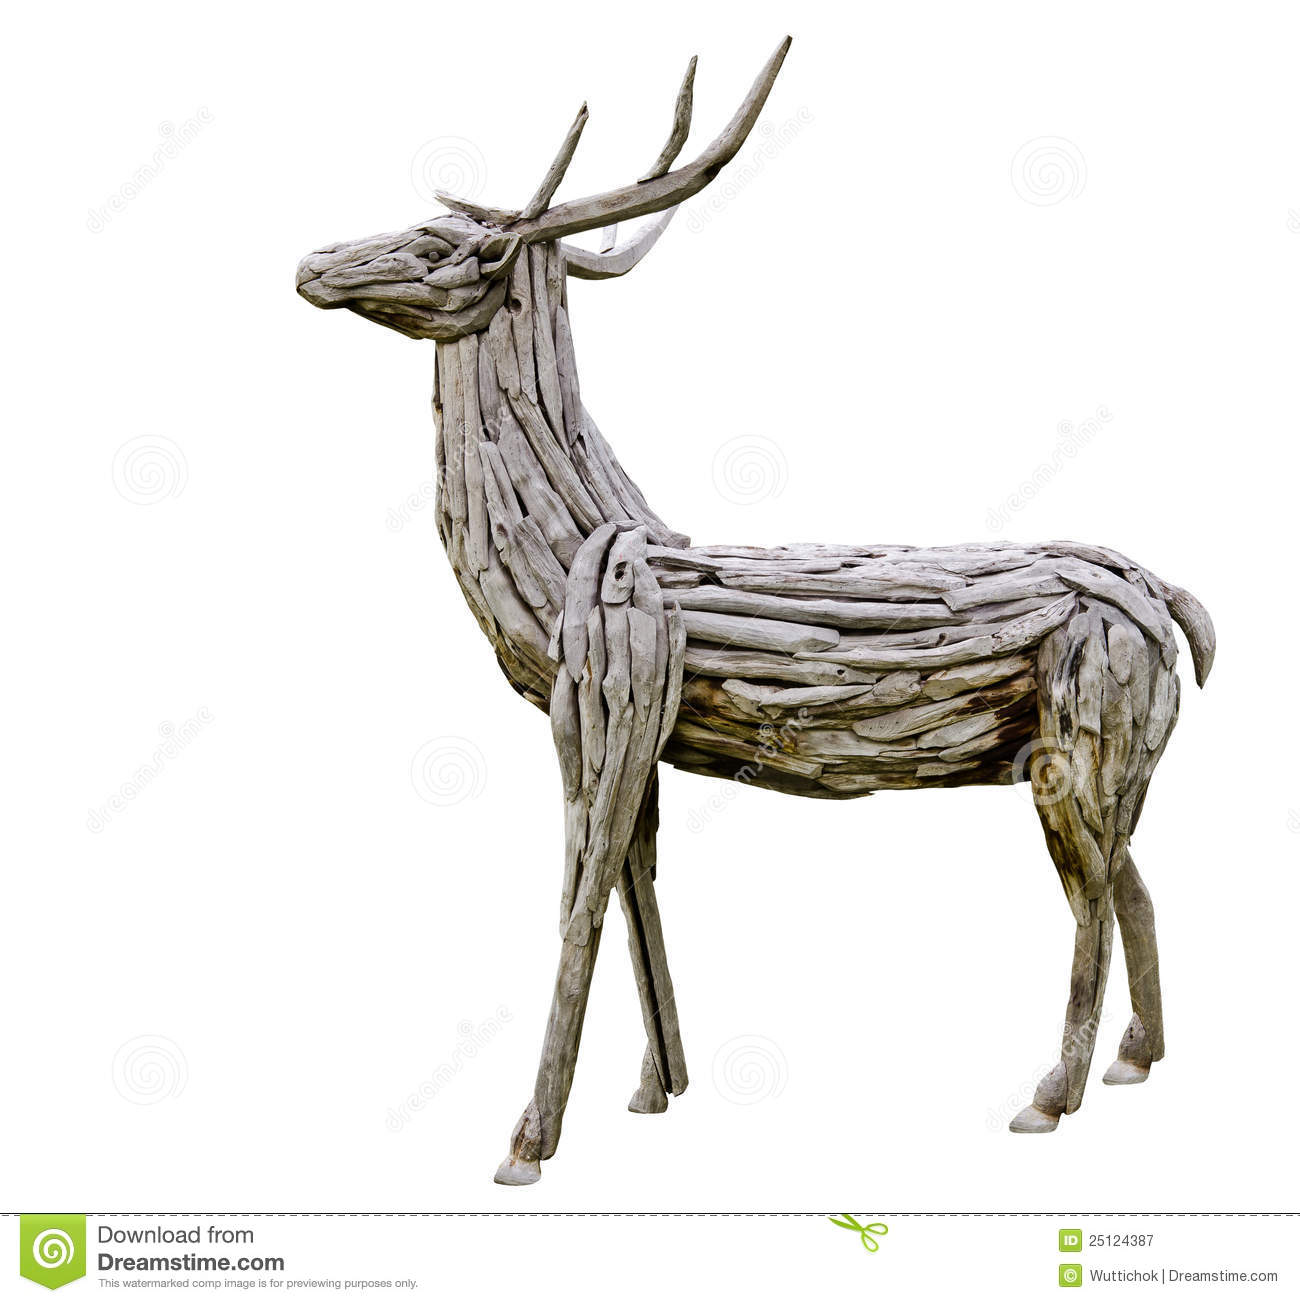 Deer Made From Wood Royalty Free Stock Photography - Image: 25124387